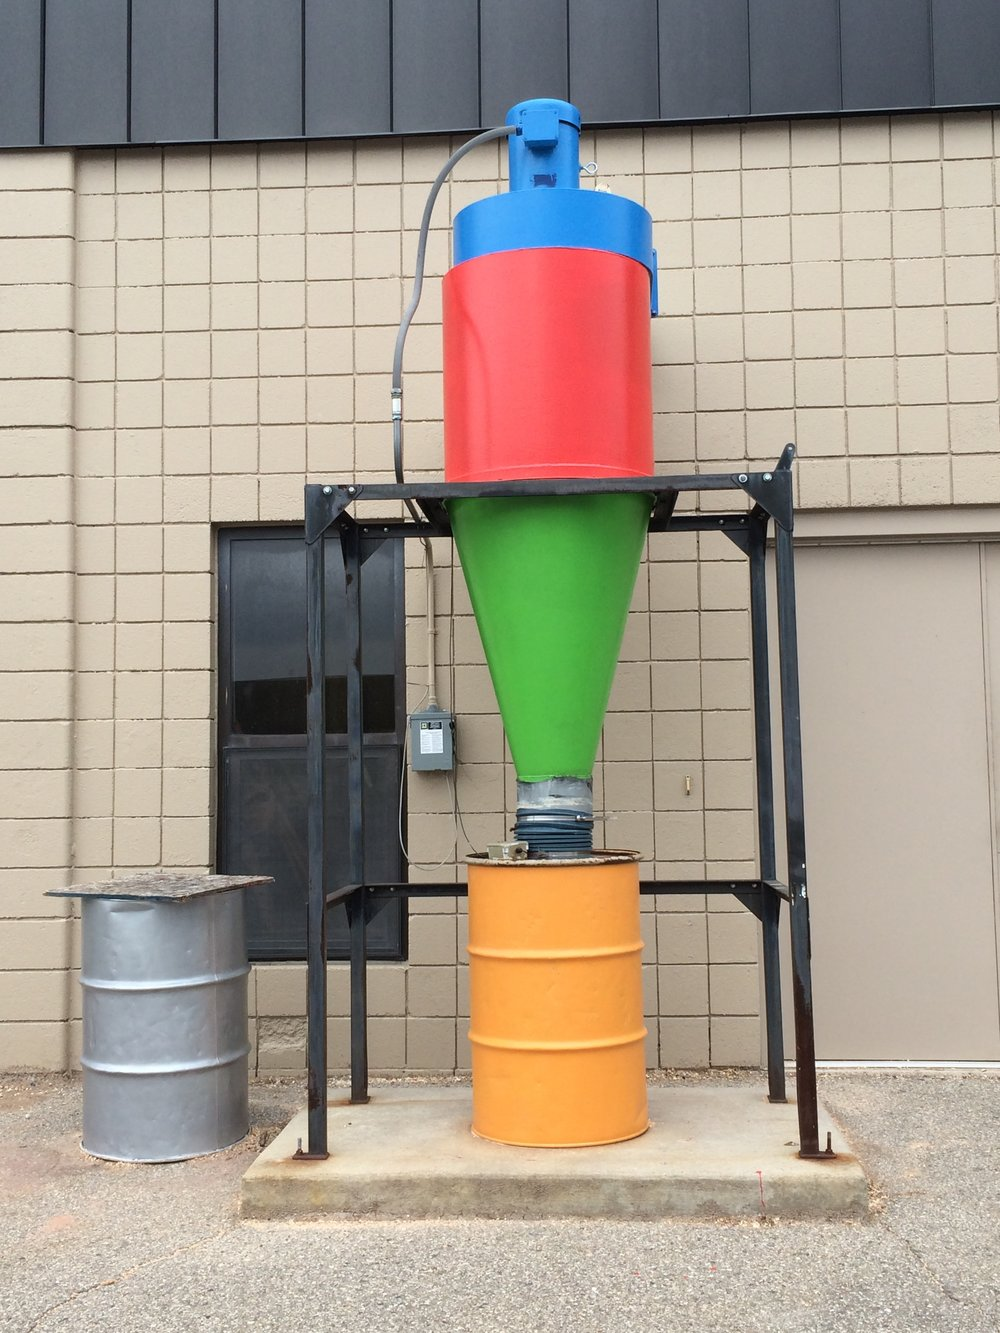 Look for the colorful dust collector! - Locating Maker Works within Airport Plaza industrial park can be challenging. Most of the buildings are beige, many navigation apps give the wrong directions, and signage is limited due to zoning regulations. We've painted our dust collector in fun Maker Works colors to brighten your day and help you find your way!Across from Costco, turn onto Plaza Drive, take the (quick) second left, and it's the third building on the right. The entrance is around the corner from the dust collector, on the right side of the building.